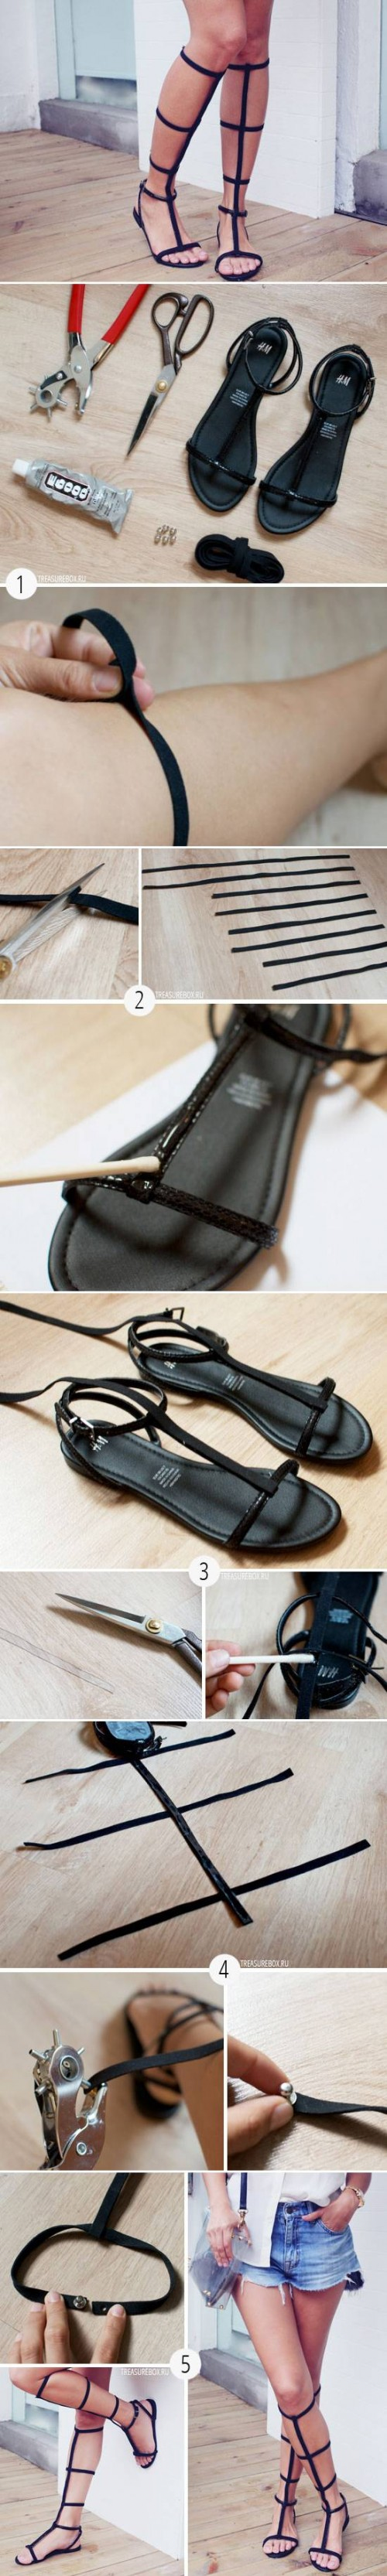 How to make Nice Old Sandal Transformation step by step DIY tutorial instructions